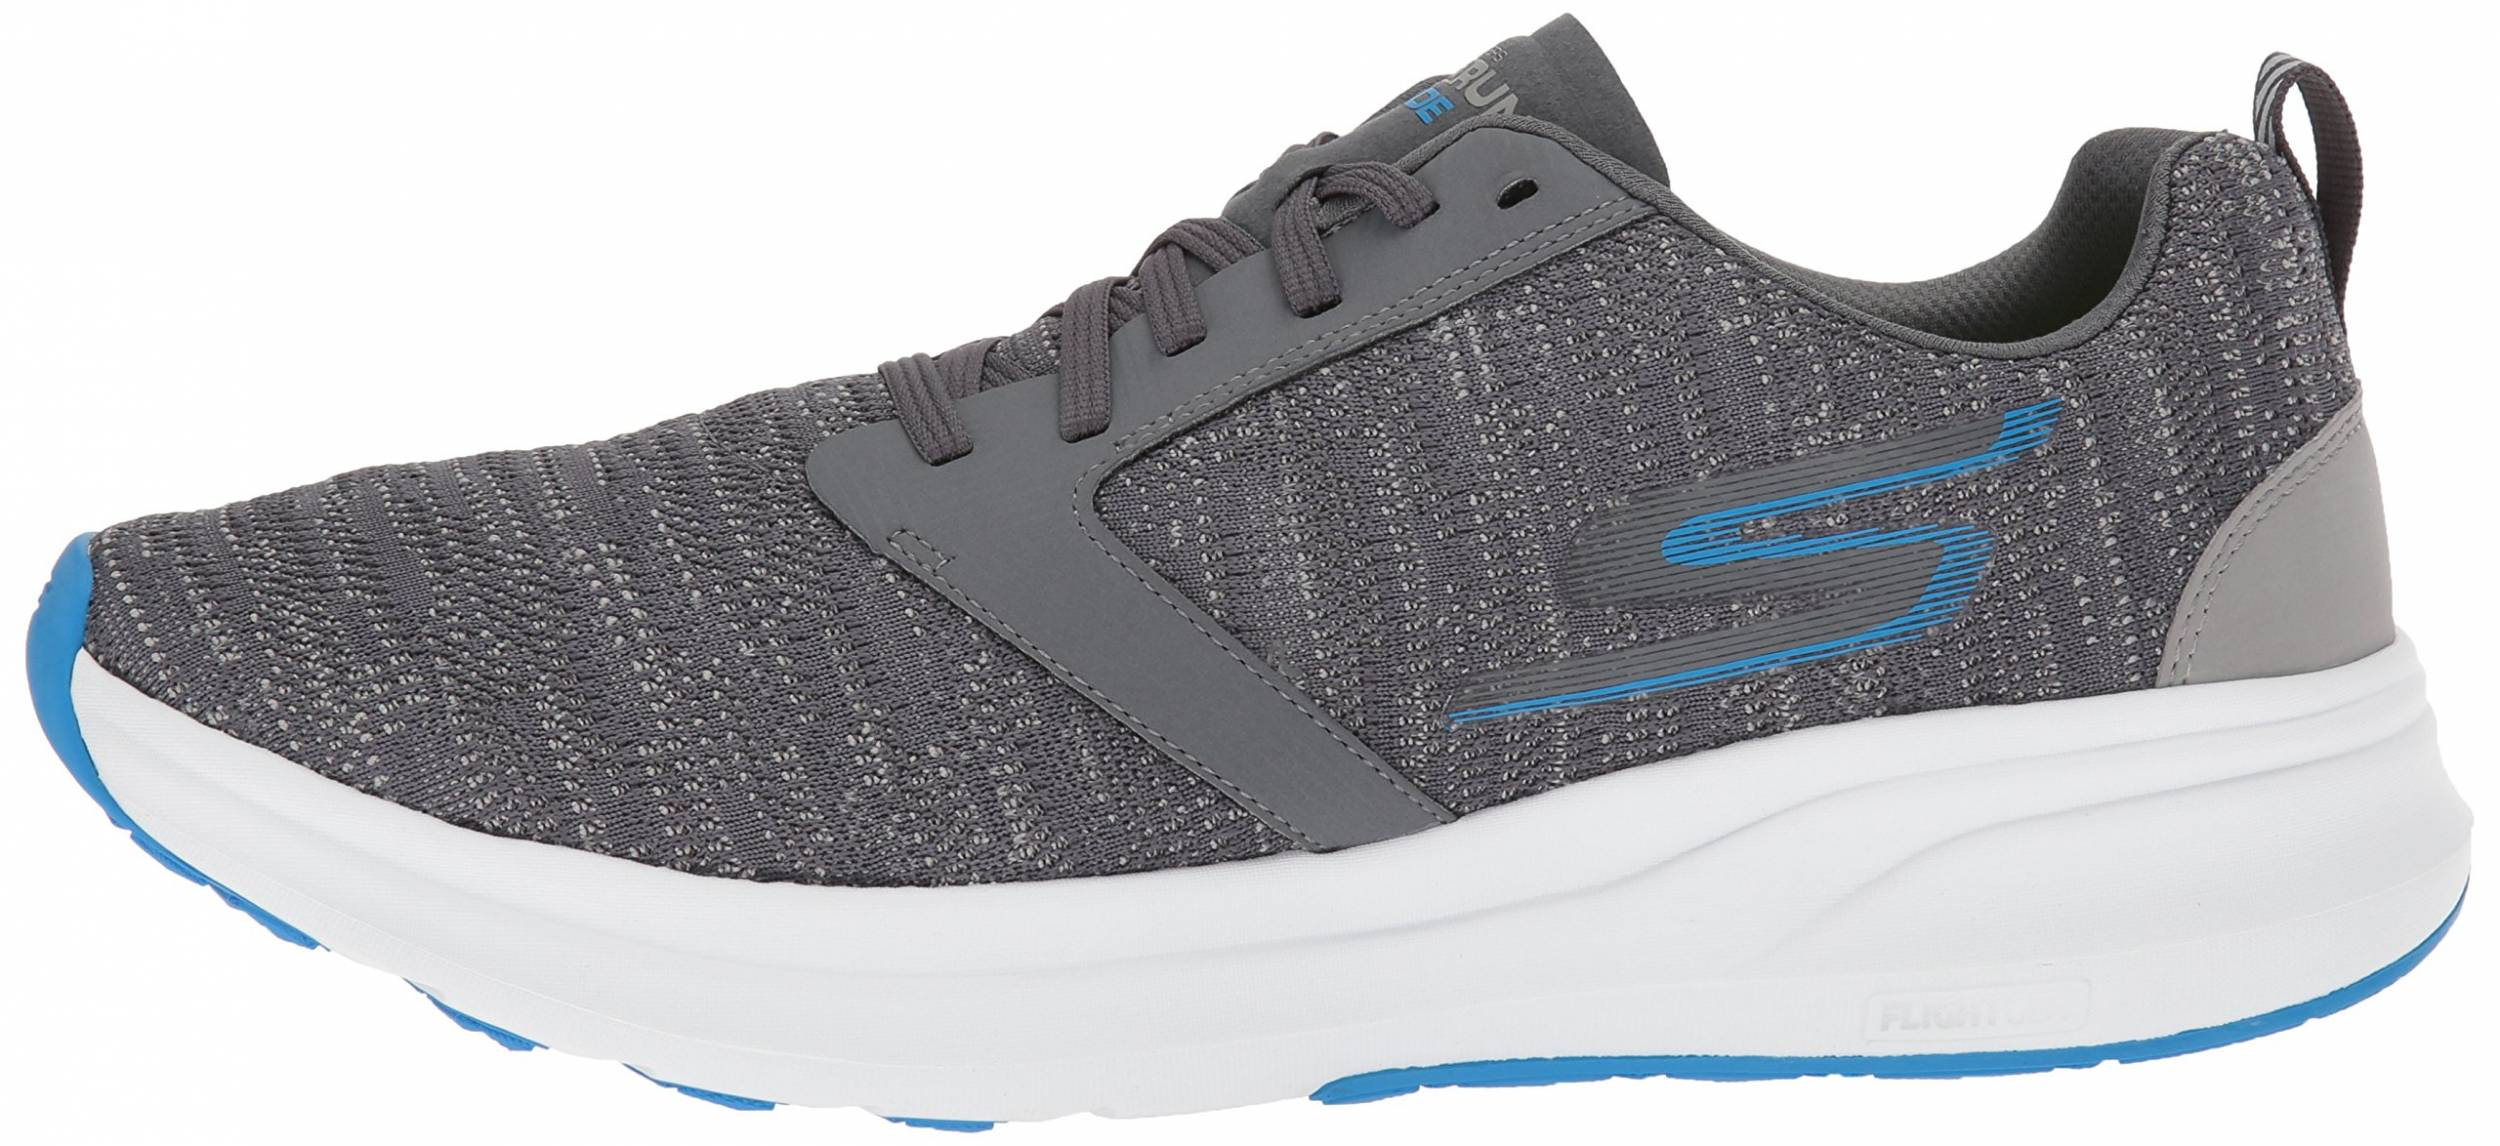 Save 60% on Skechers Running Shoes (56